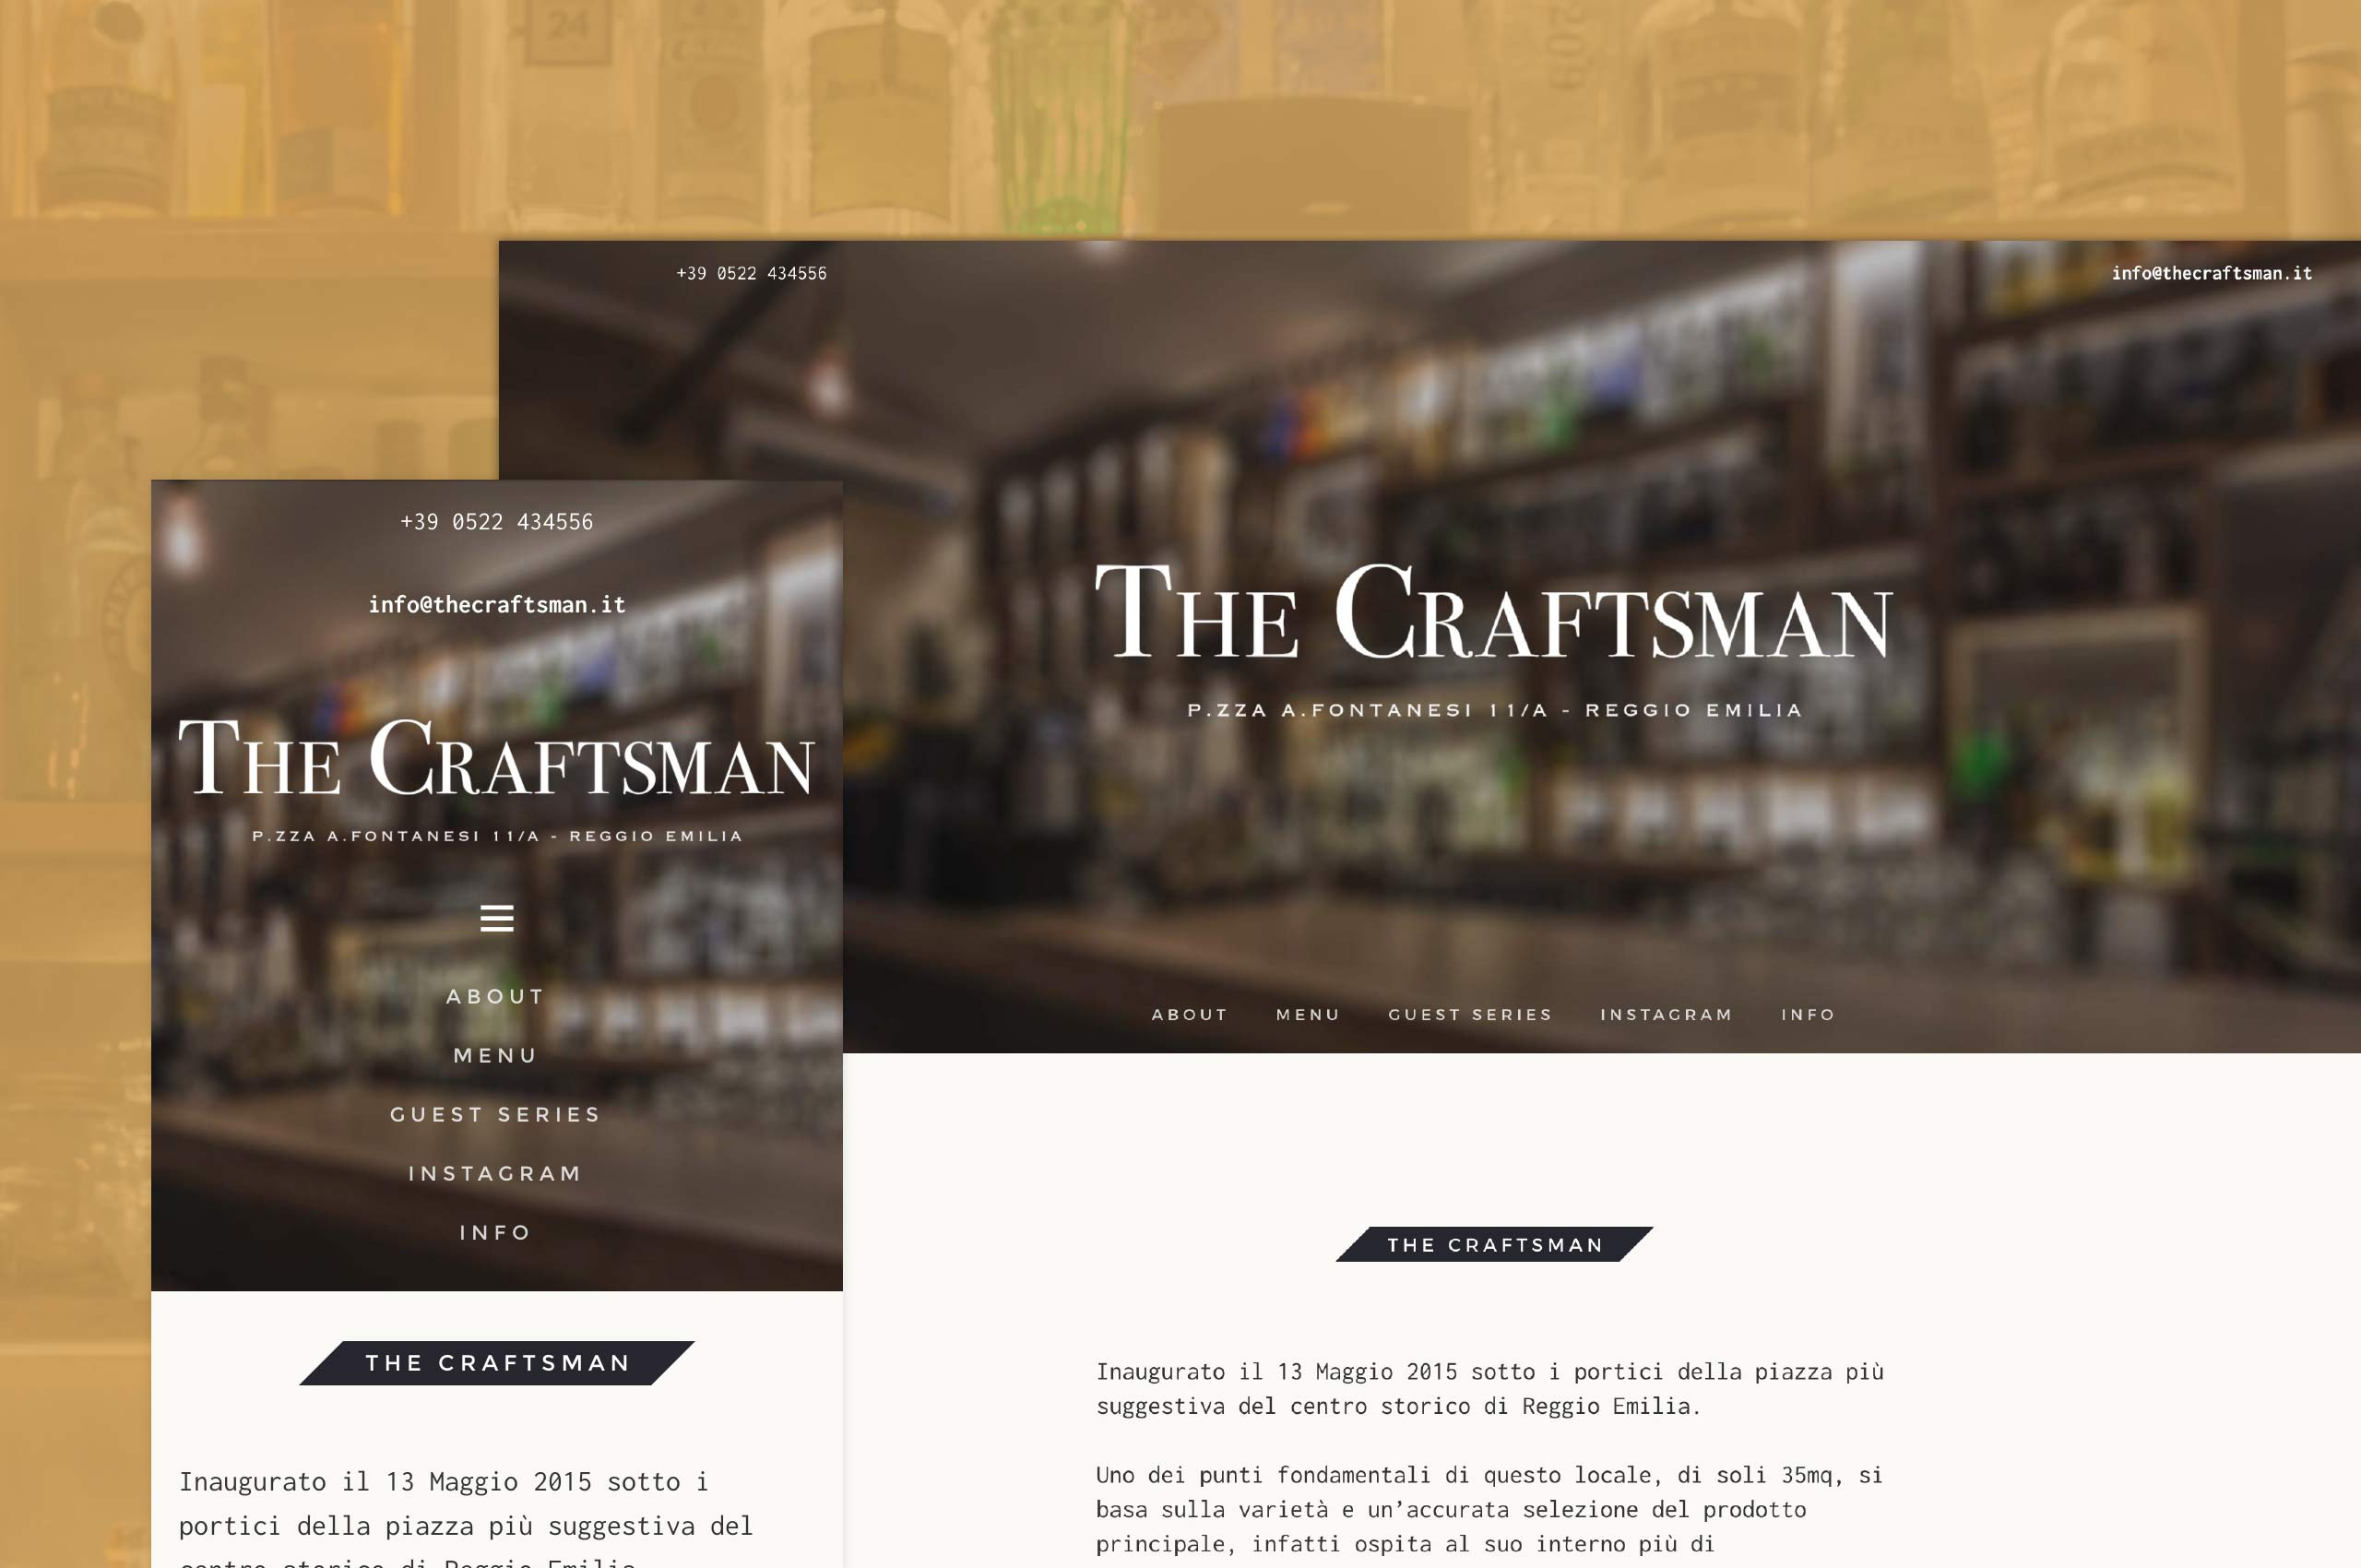 The header of The Craftsman webpage